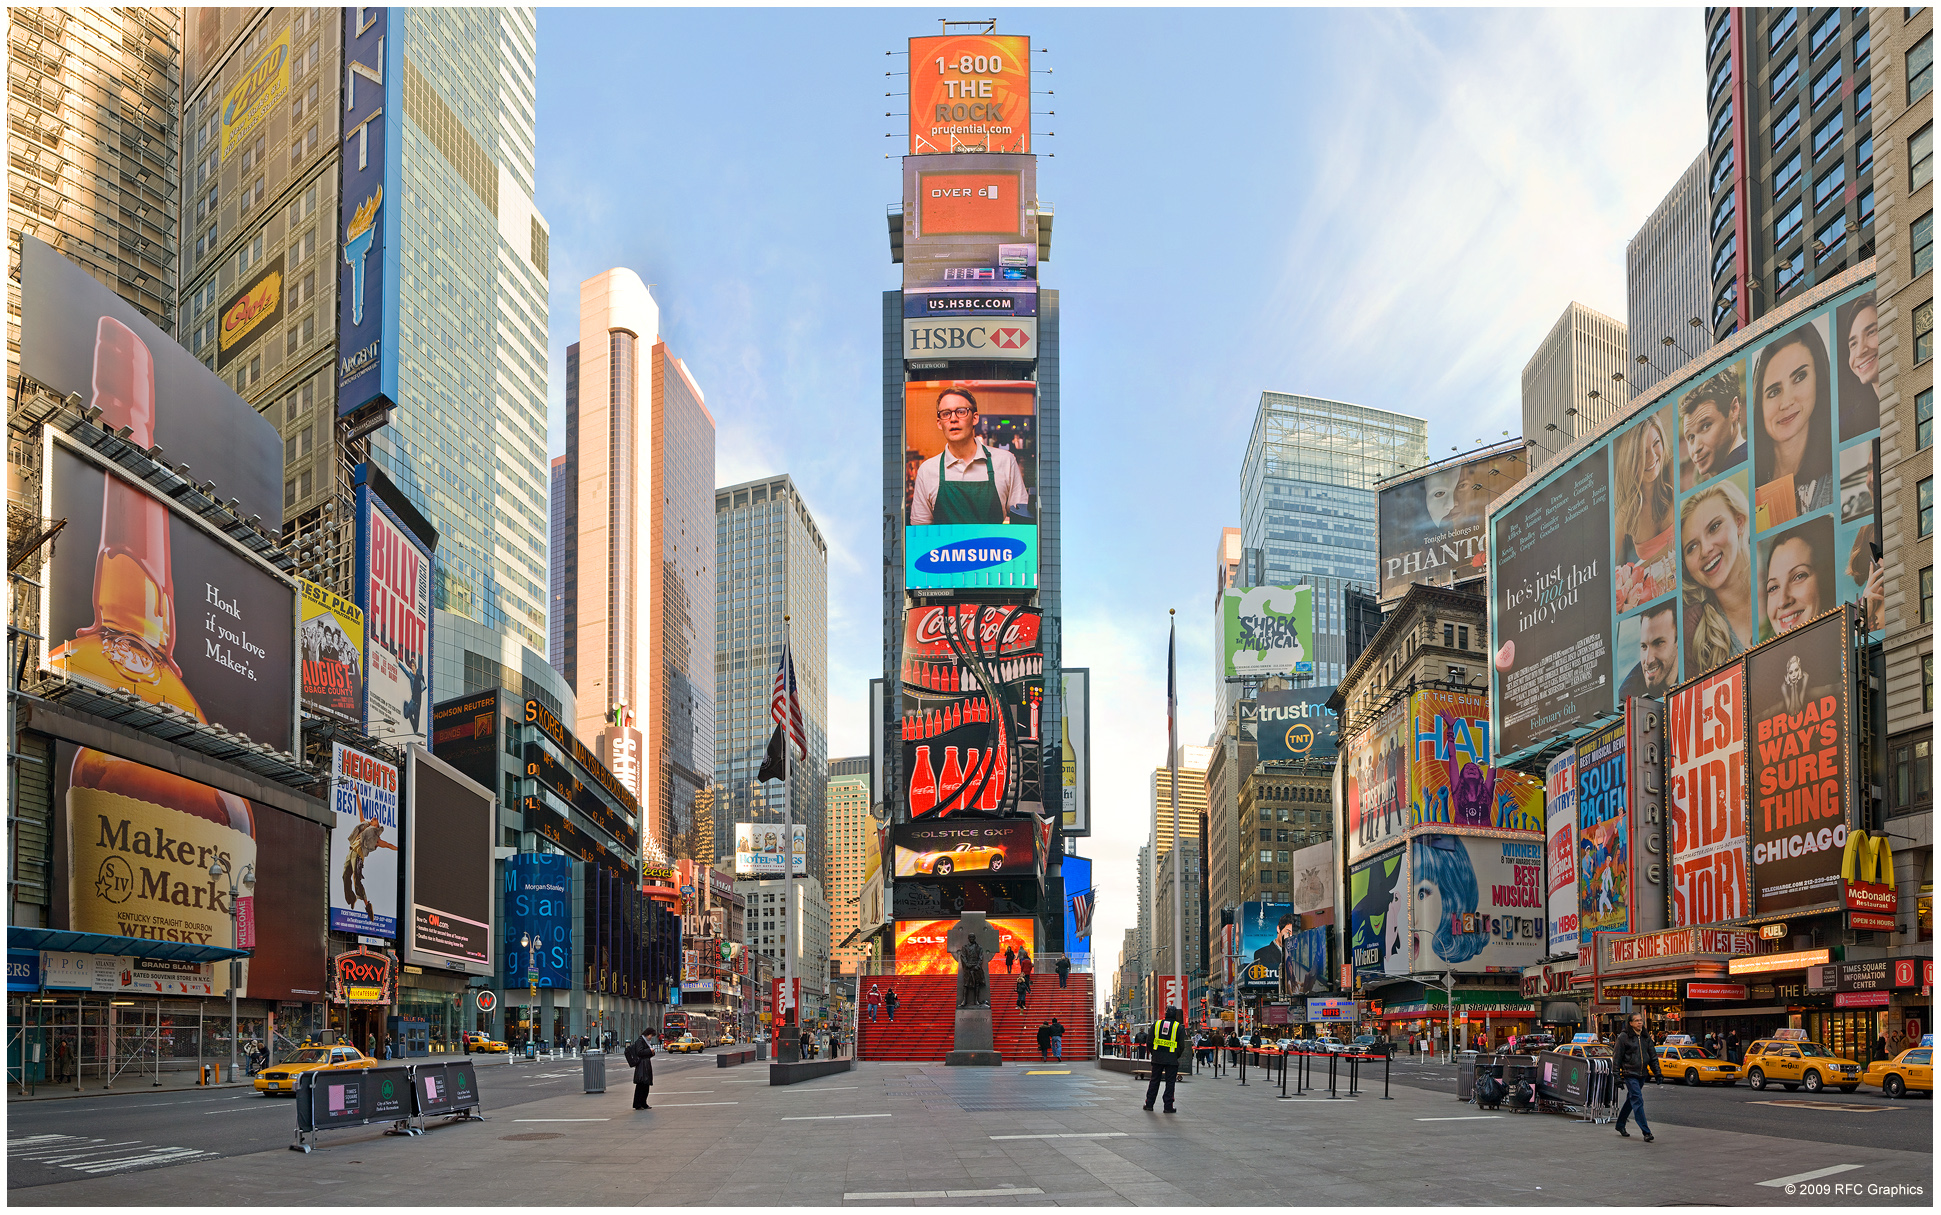 Free Download Times Square Wallpapers Times Square Background 1941x1215 For Your Desktop Mobile Tablet Explore 41 Times Square Hd Wallpaper Times Square Wallpaper New York City 4k Wallpaper